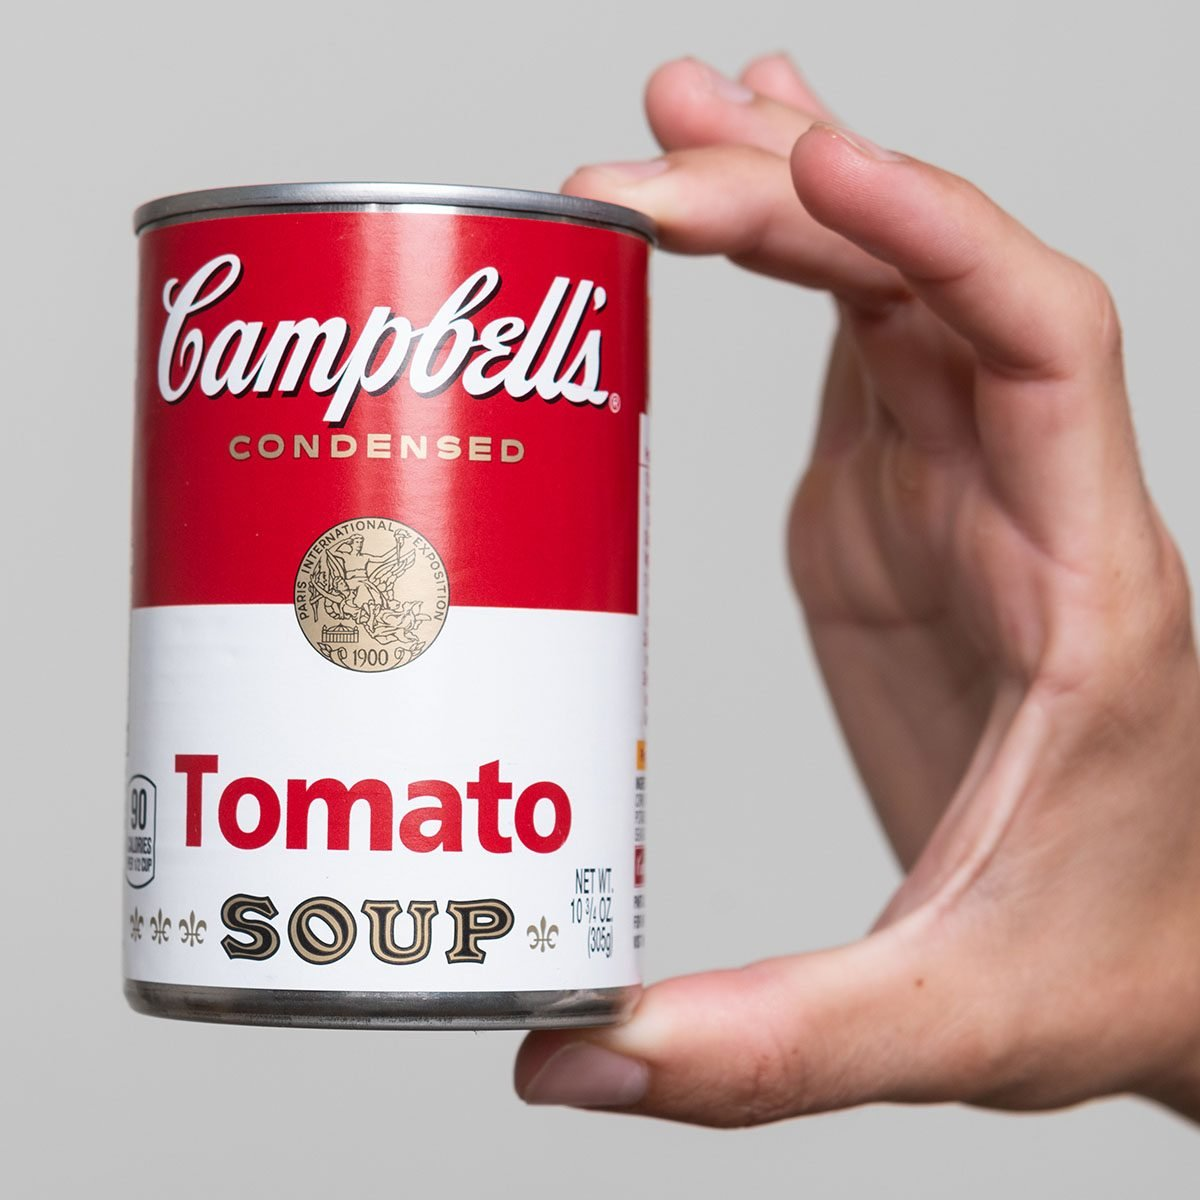 Human hand holding a tin can of Campbell's Soup tomato soup on gray background